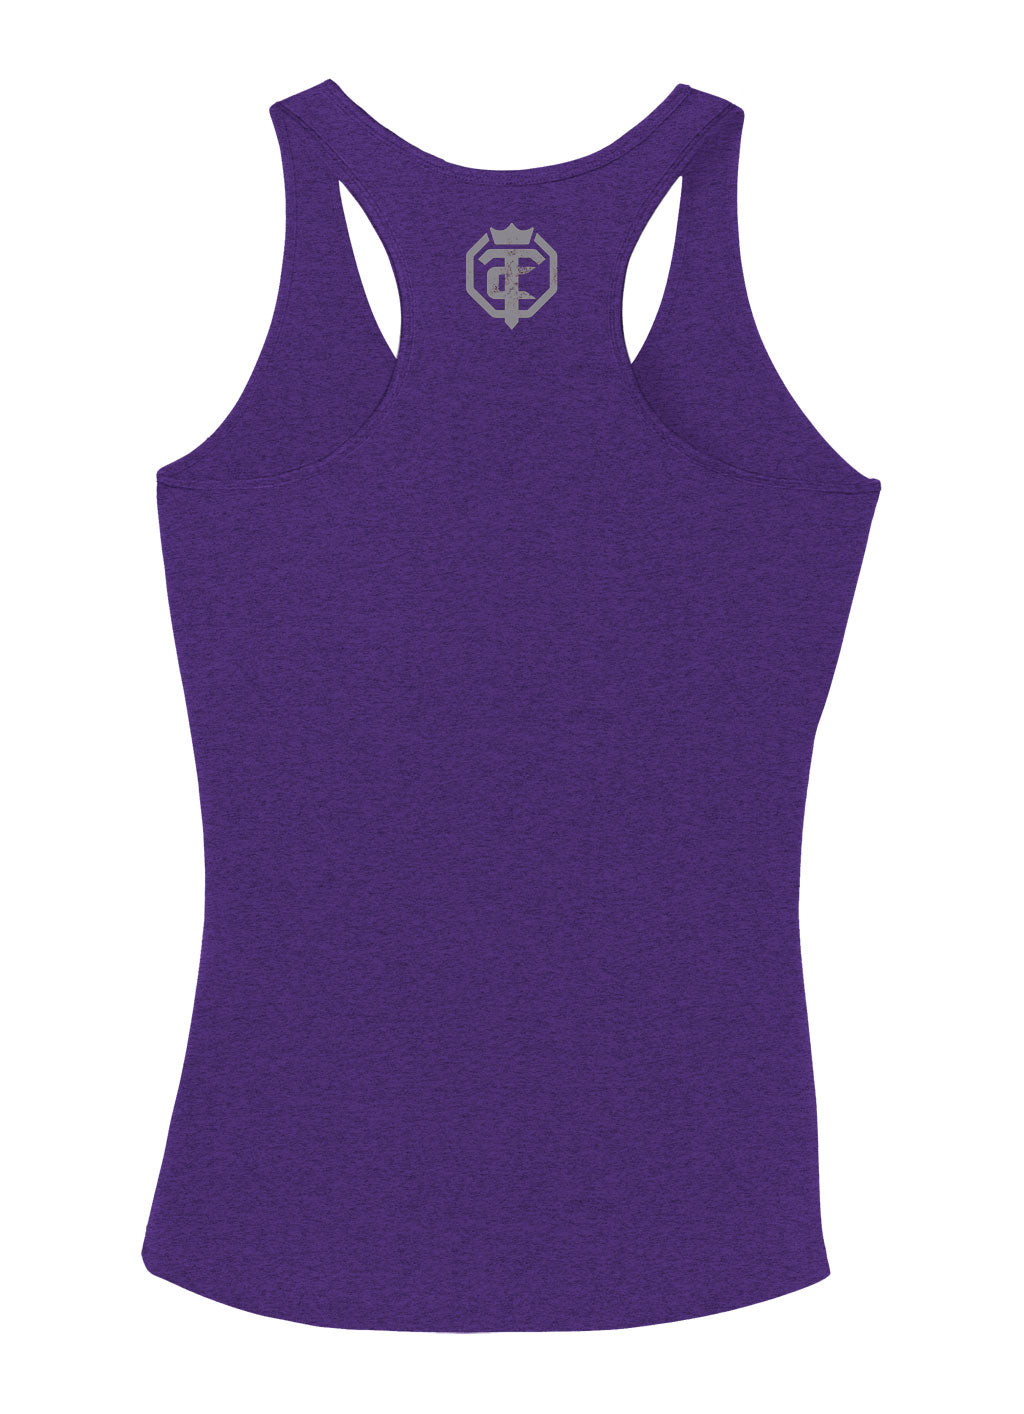 Open The Cage - Soar - Purple Women's Racer Back Tank